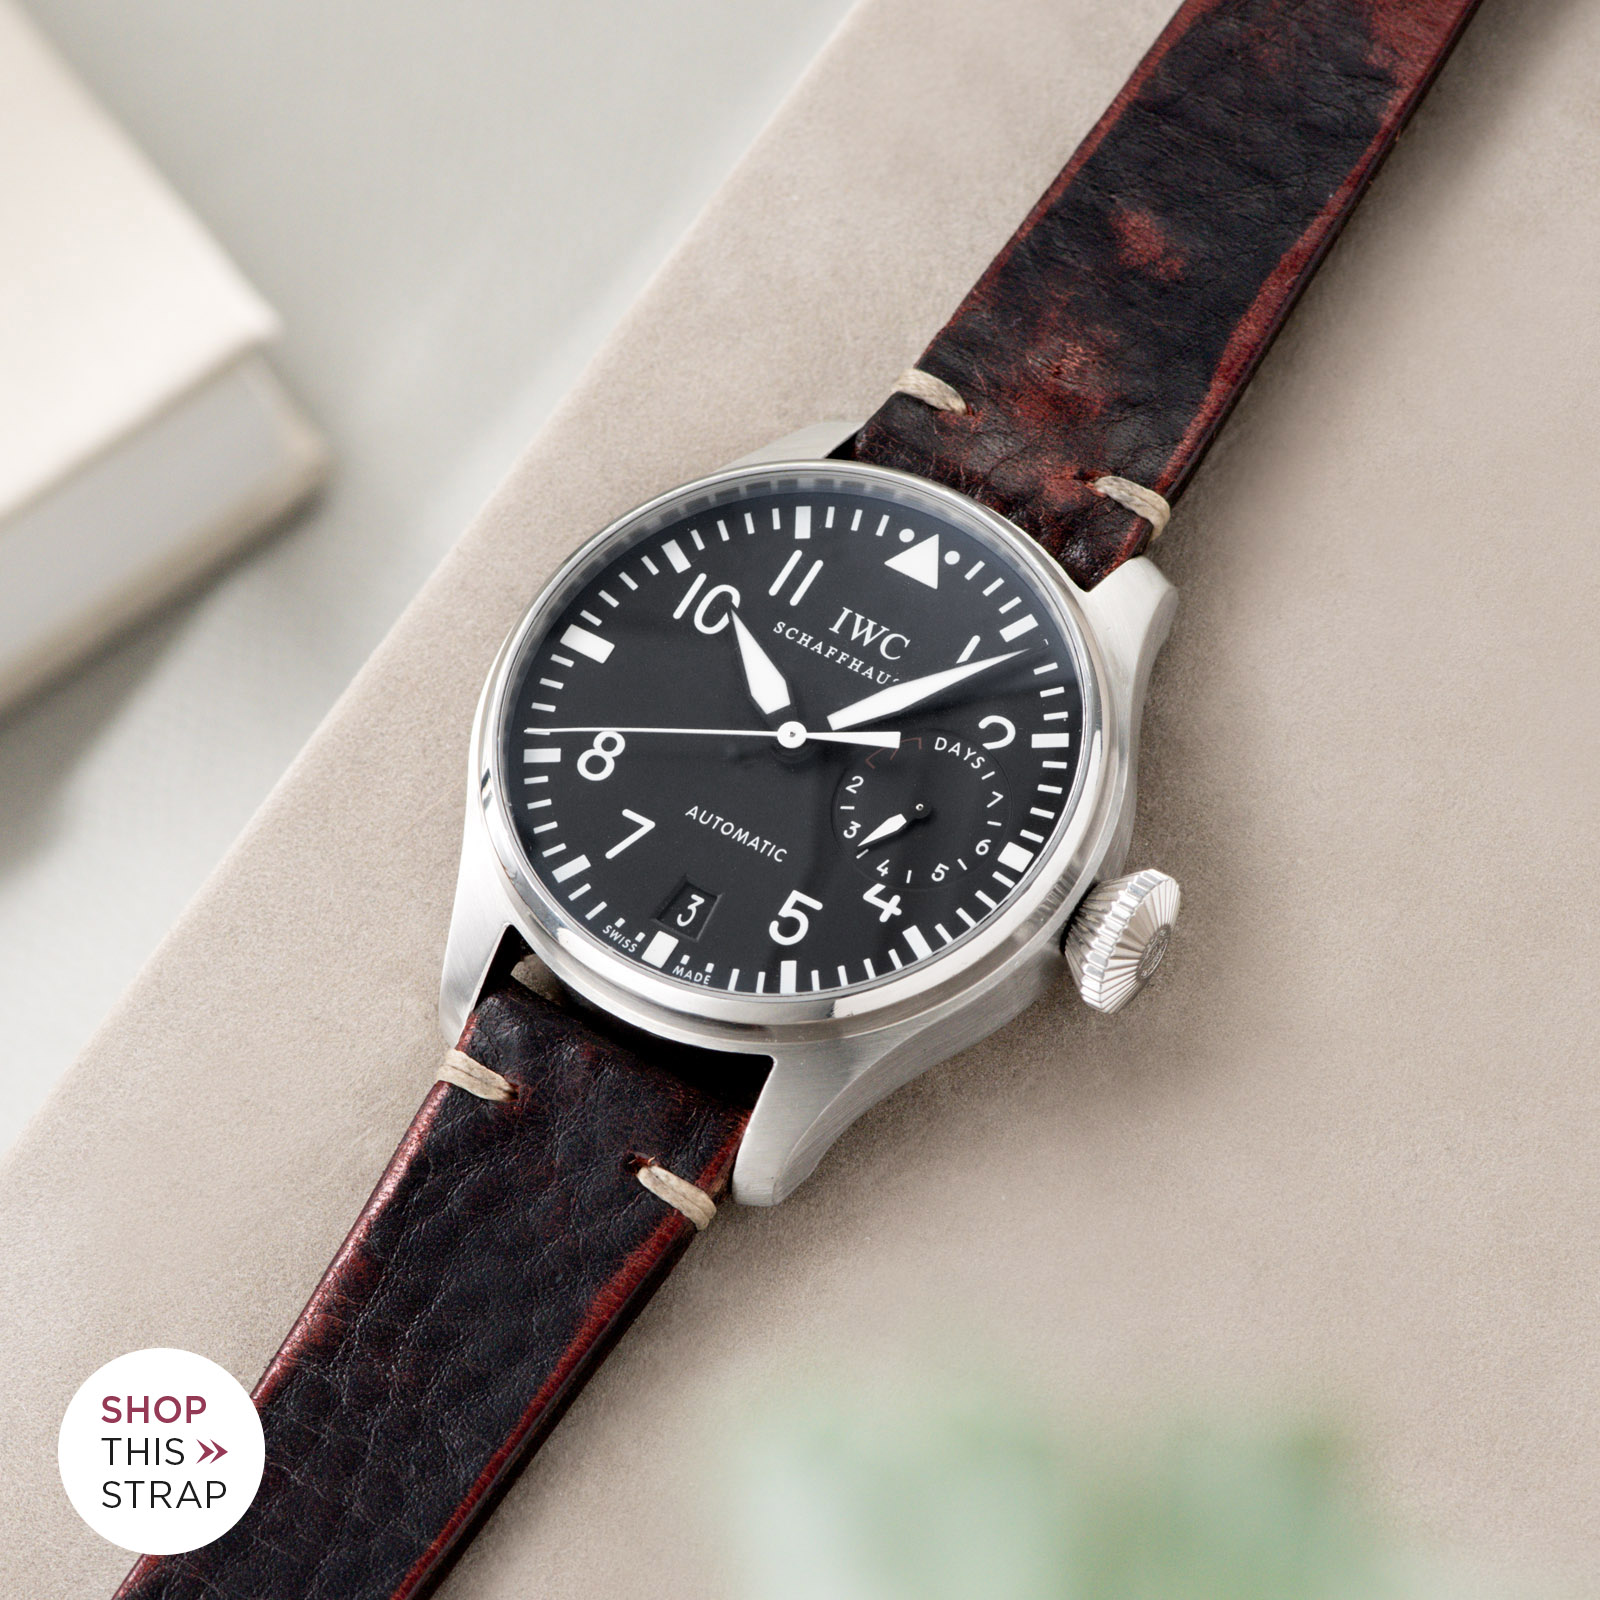 Bulang and Sons_Strap Guide_IWC Big Pilot ref IW5004_Diablo Black Leather Watch Strap